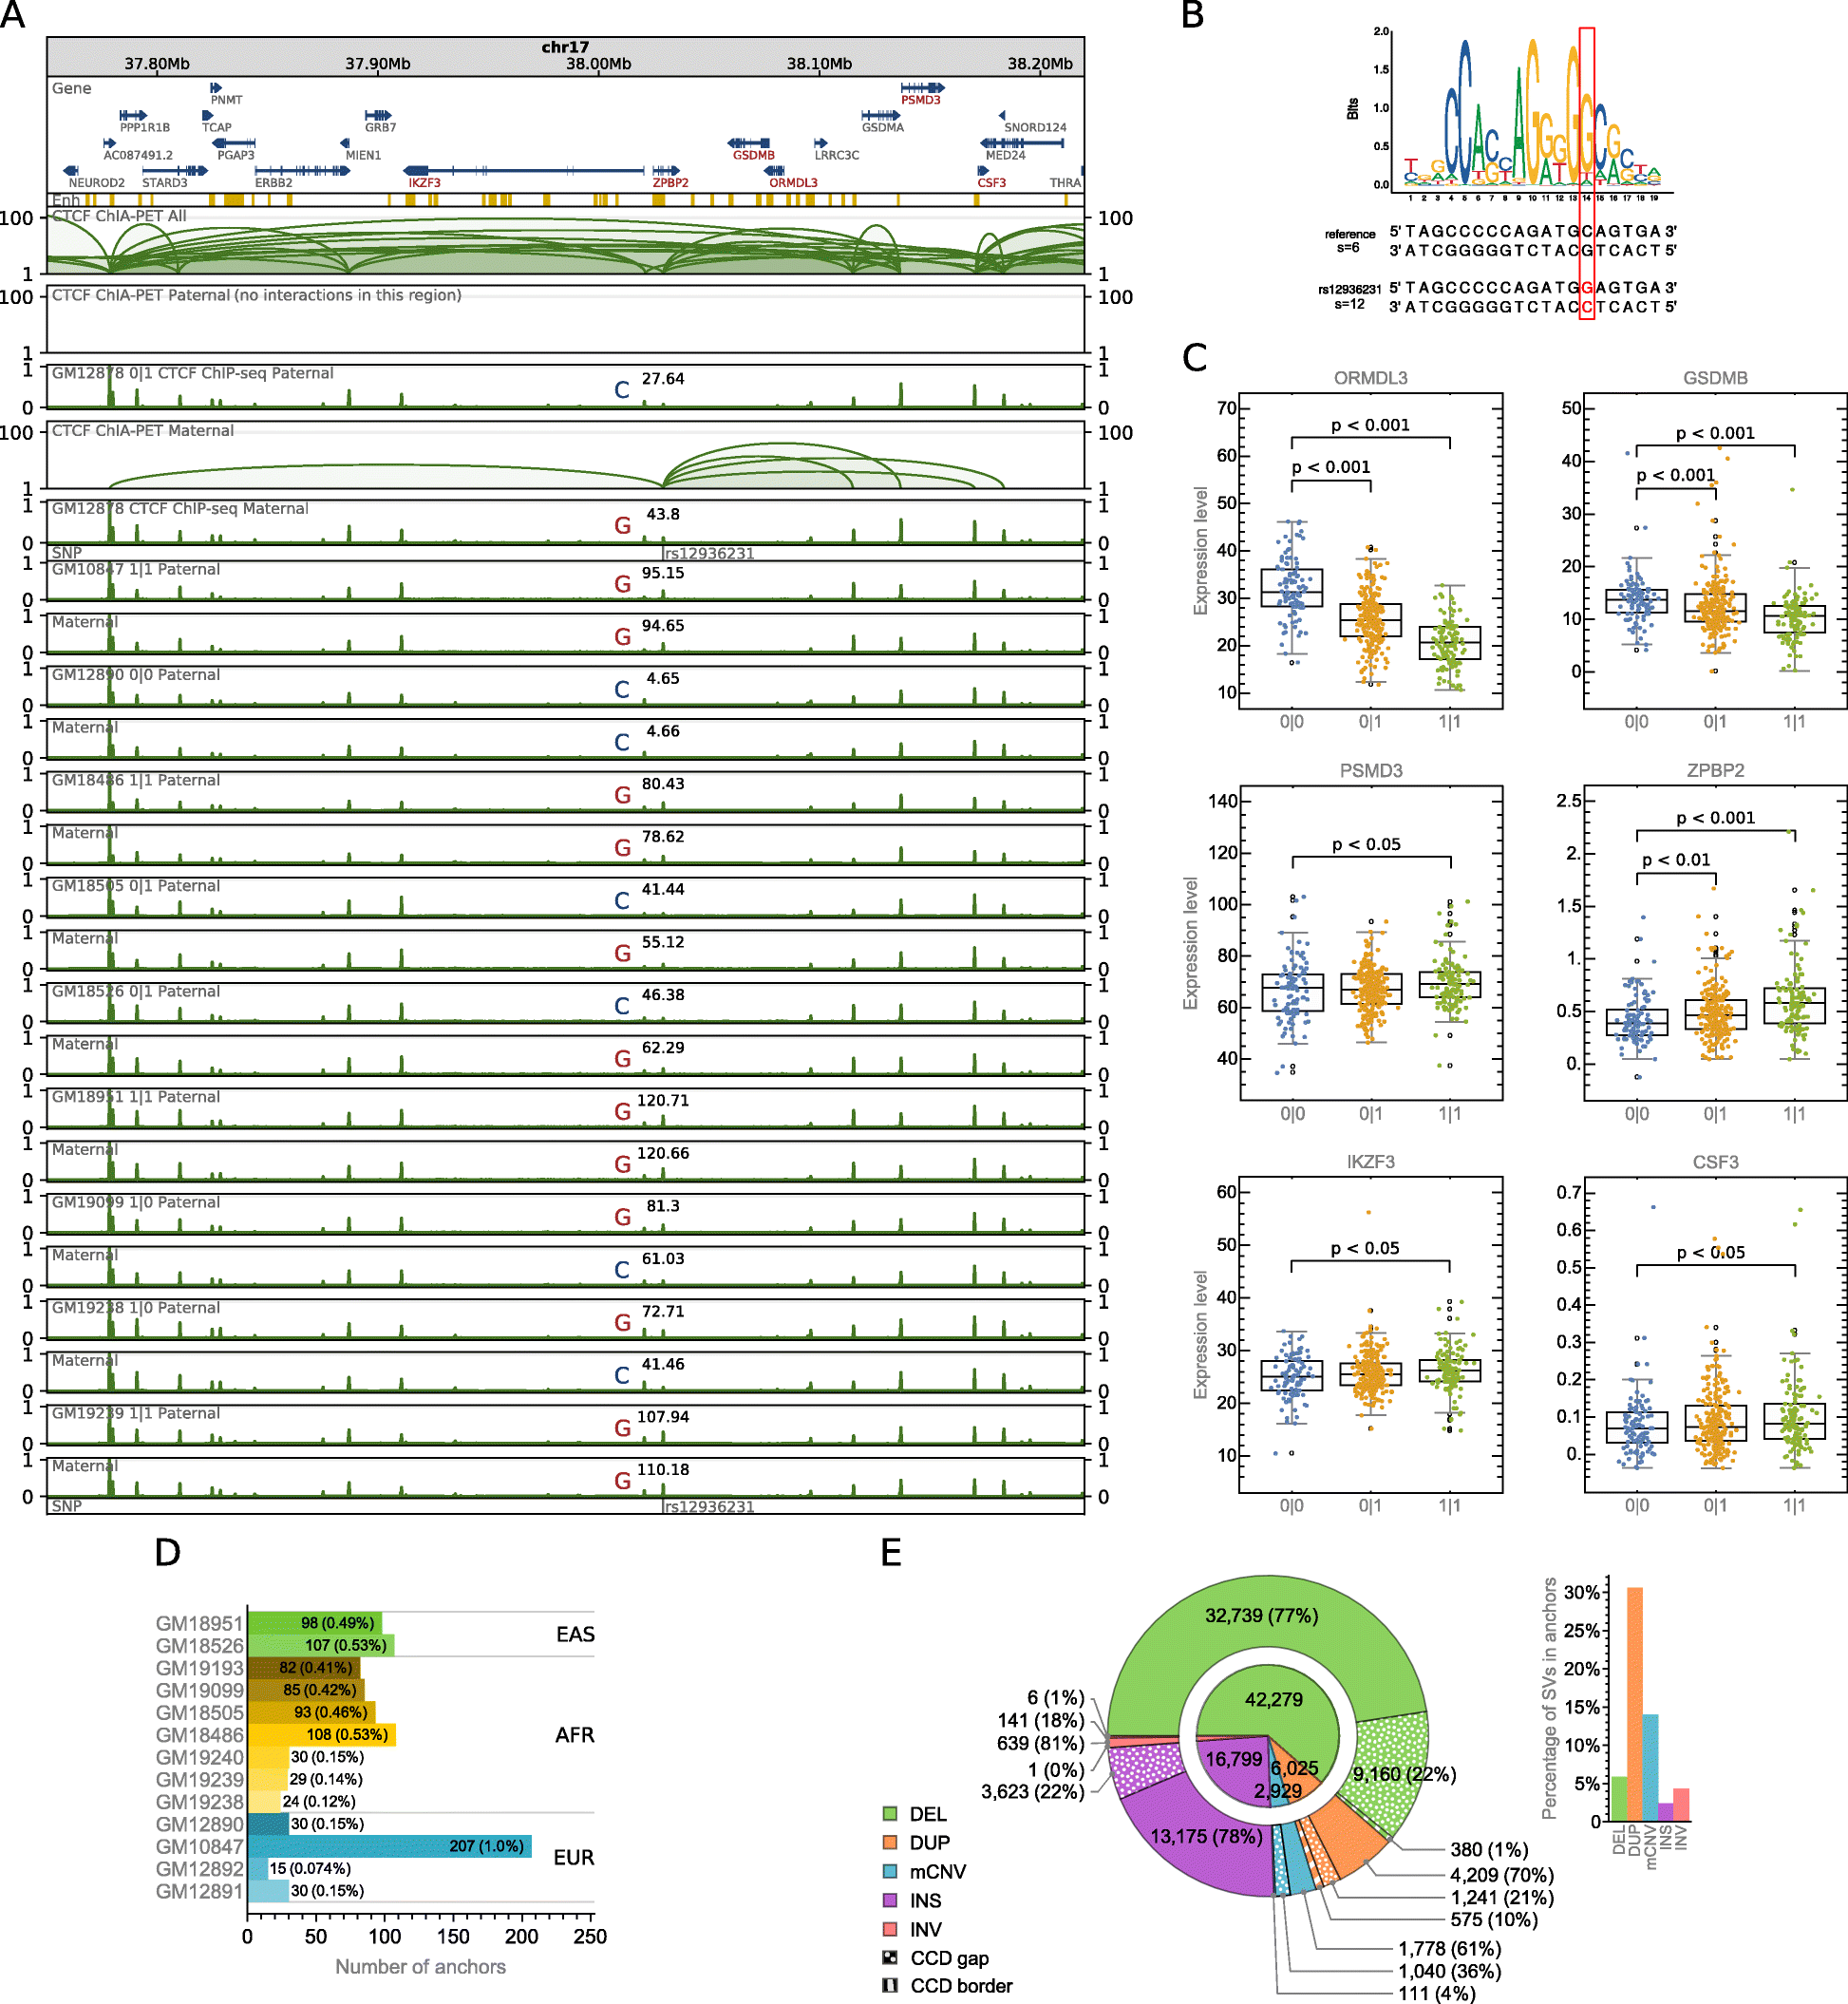 Spatial chromatin architecture alteration by structural